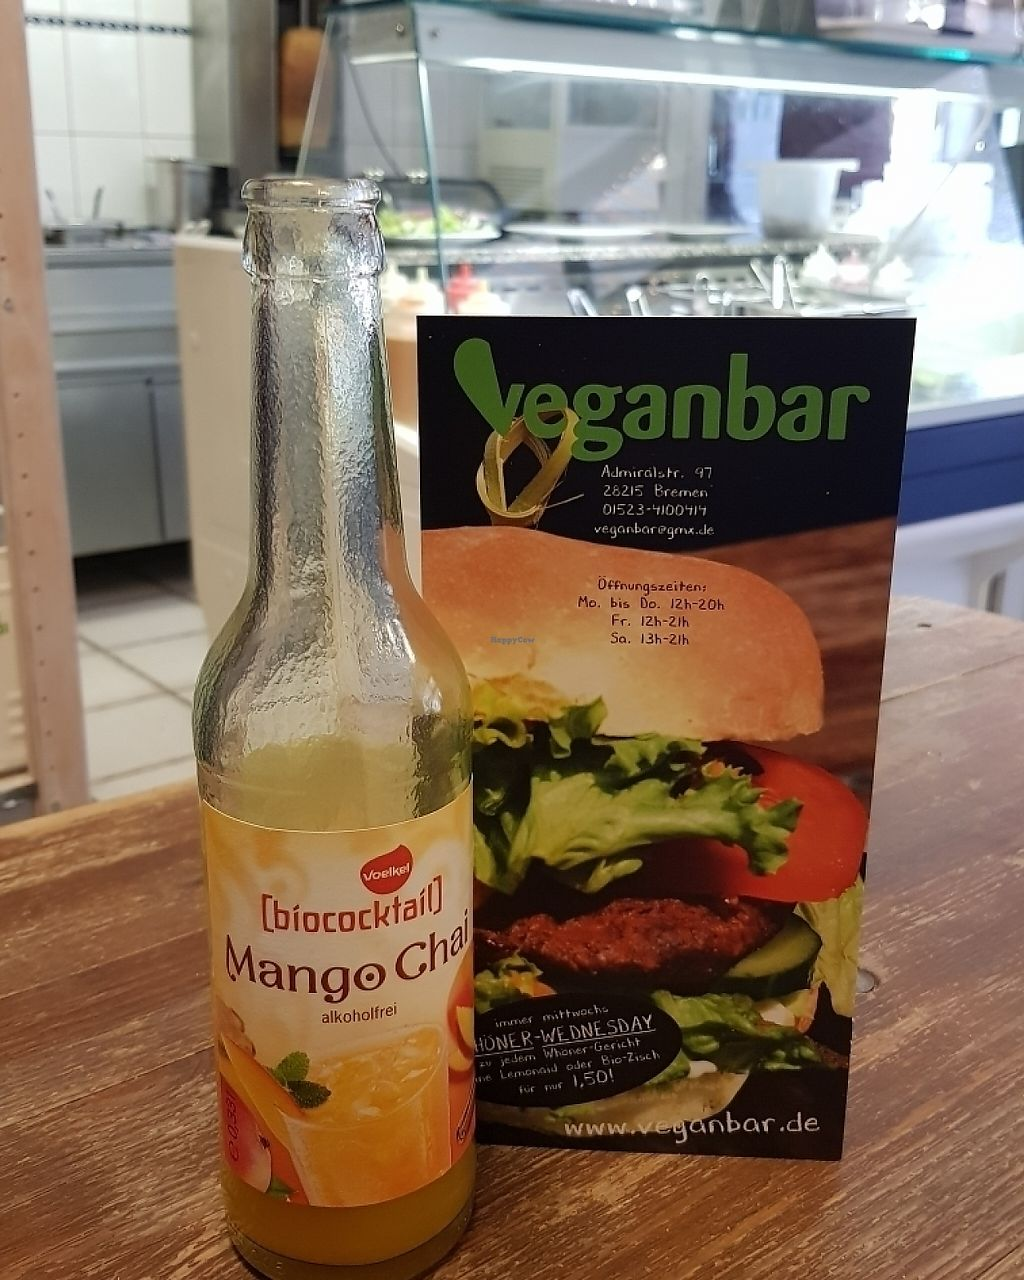 """Photo of Veganbar  by <a href=""""/members/profile/MartaMutti"""">MartaMutti</a> <br/>delicious <br/> May 8, 2017  - <a href='/contact/abuse/image/20940/257090'>Report</a>"""